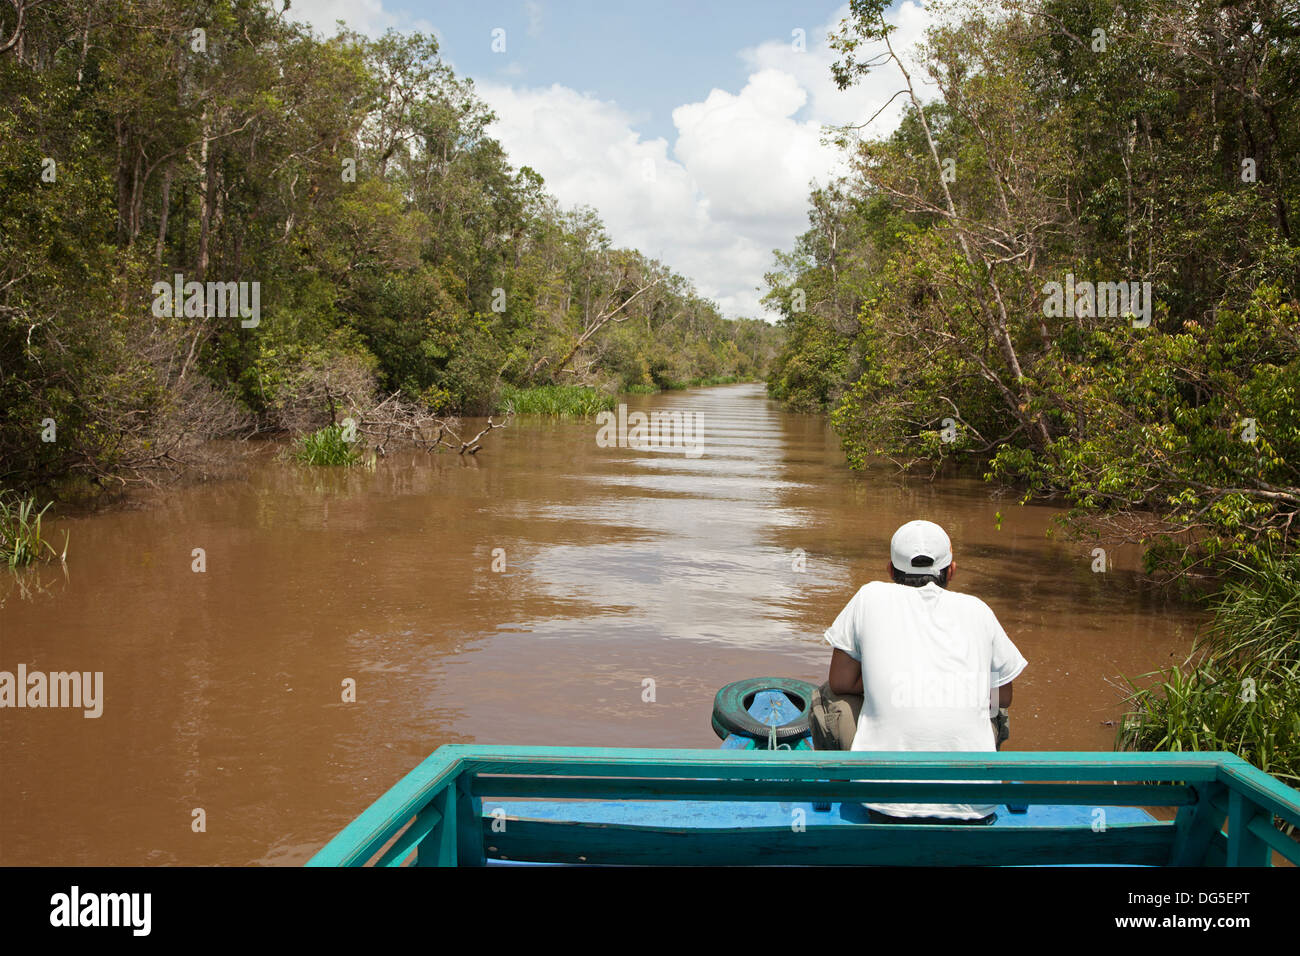 Indonesian ecotour guide sitting in a klotok, a traditional Indonesian river boat, on the Sekonyer River in Borneo. - Stock Image